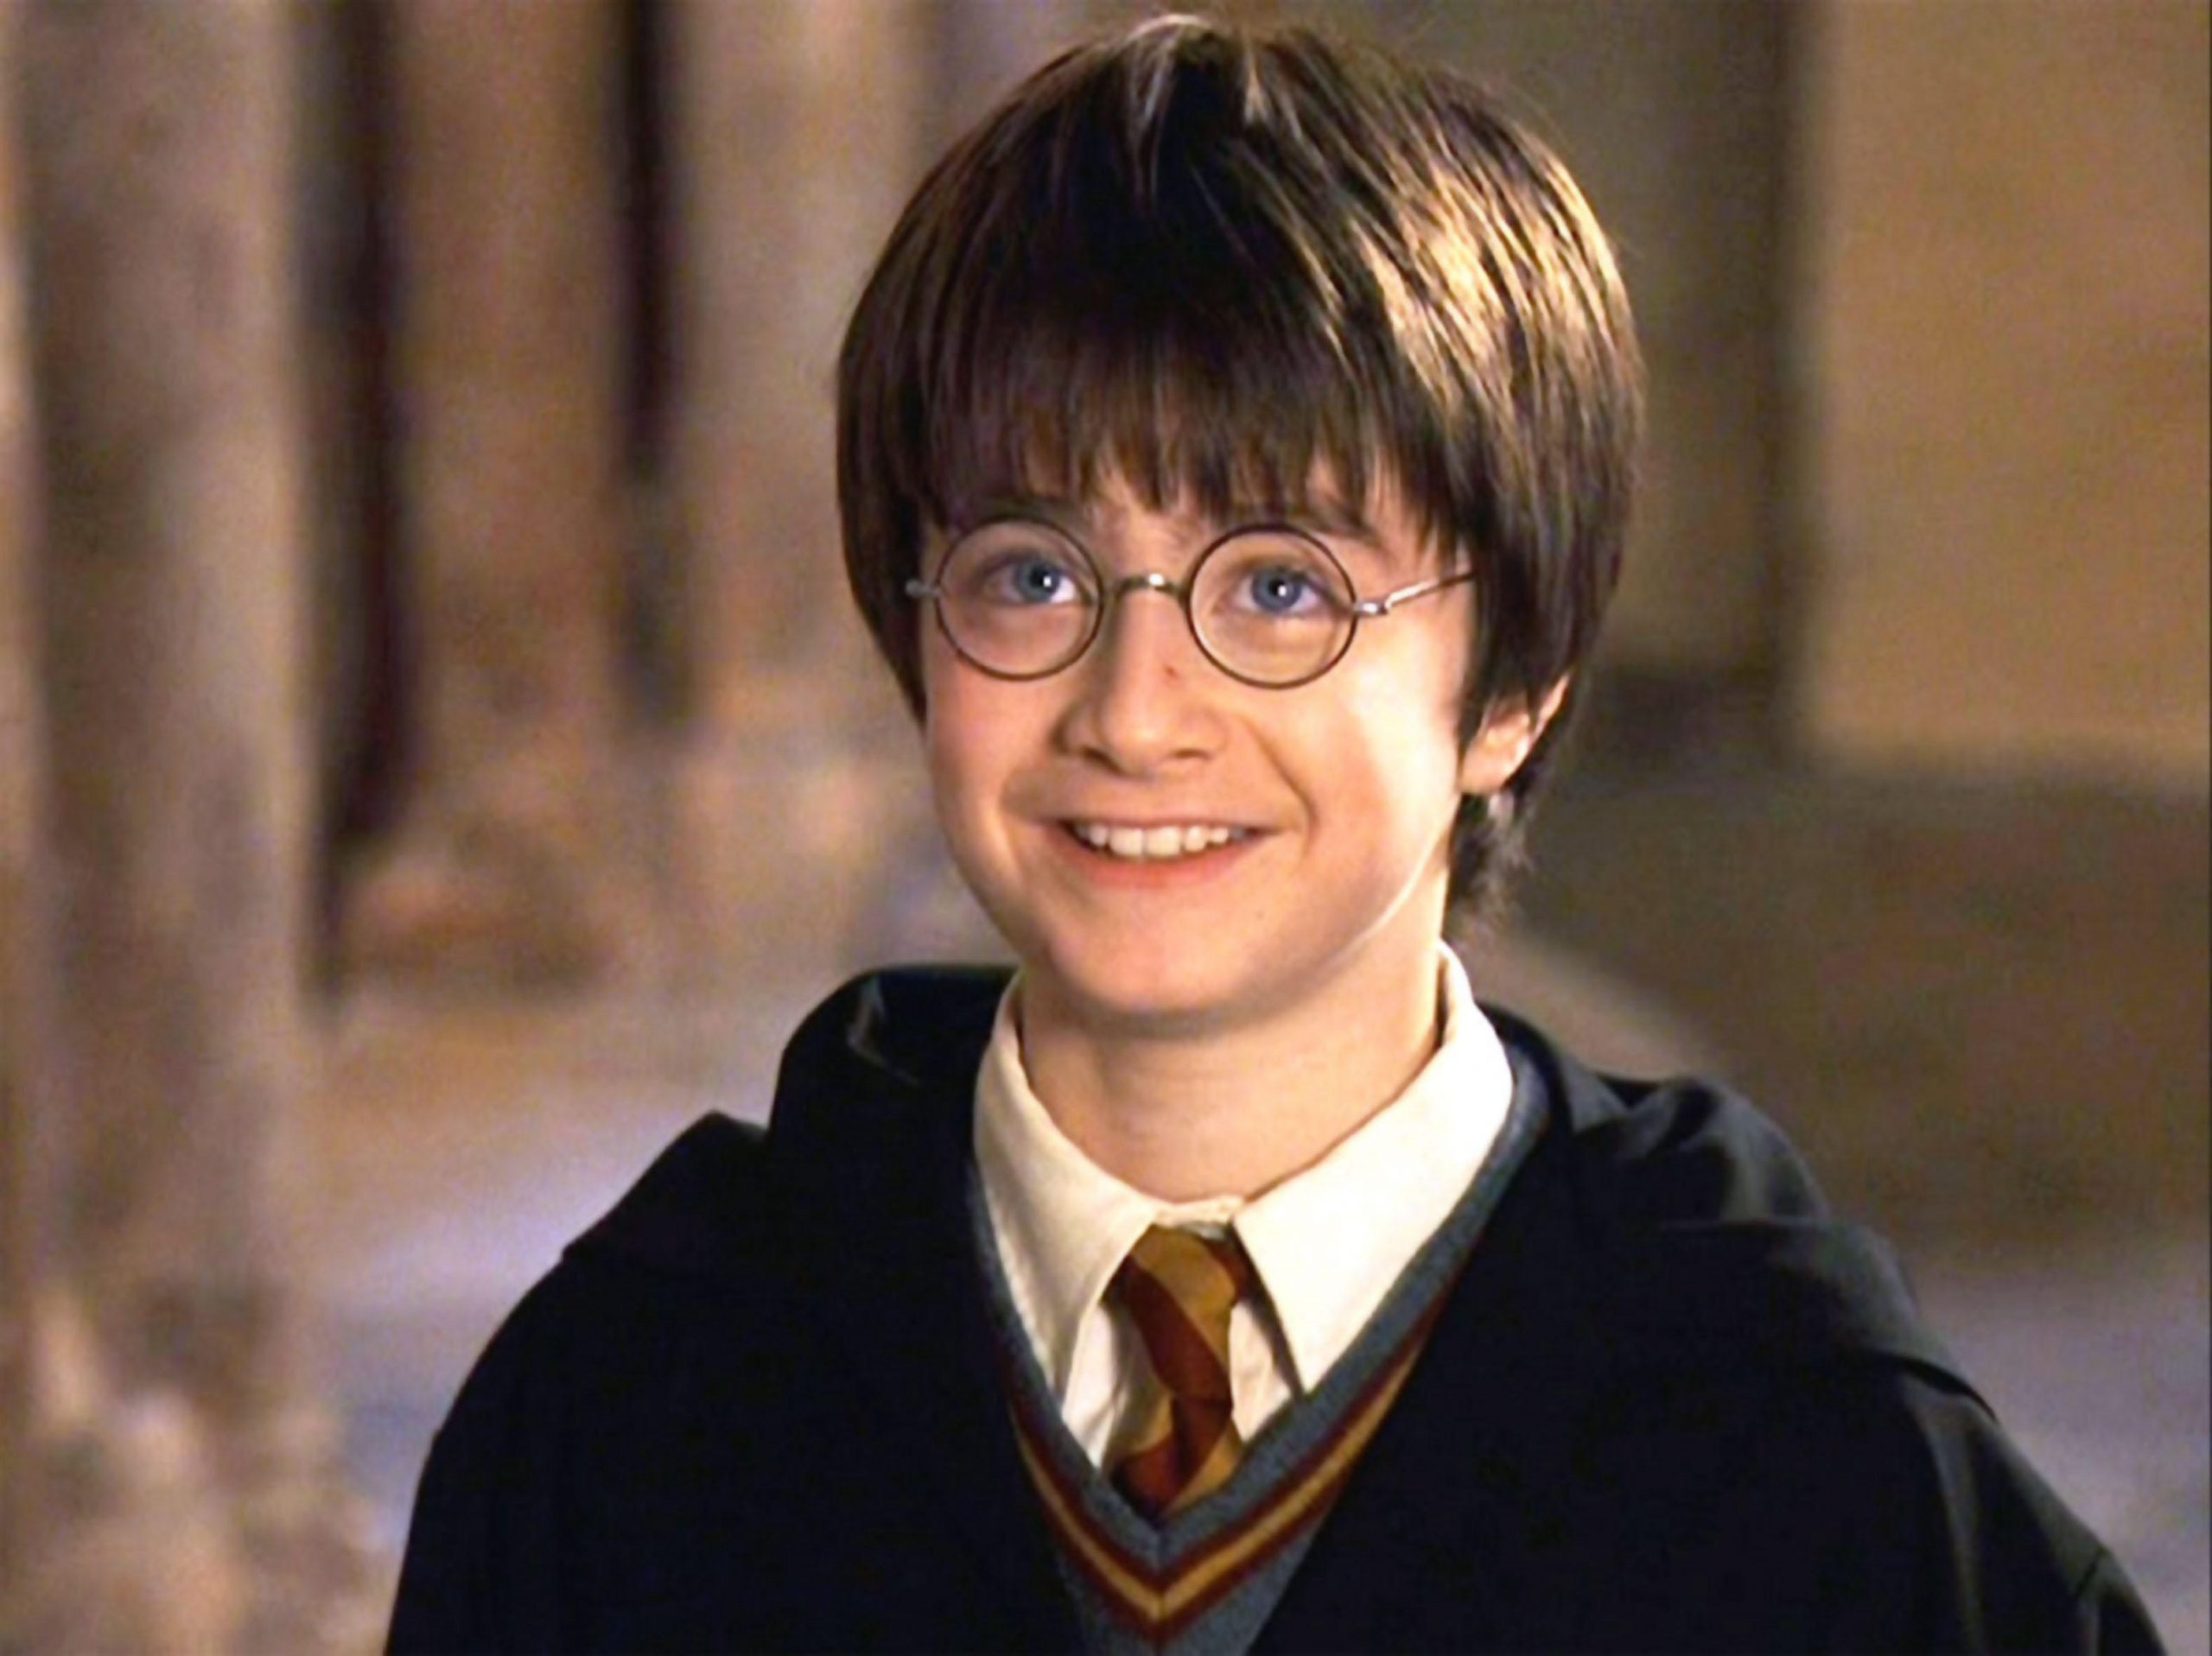 Harry Potter star Daniel Radcliffe looks almost unrecognisable with a HUGE beard in his new TV show!